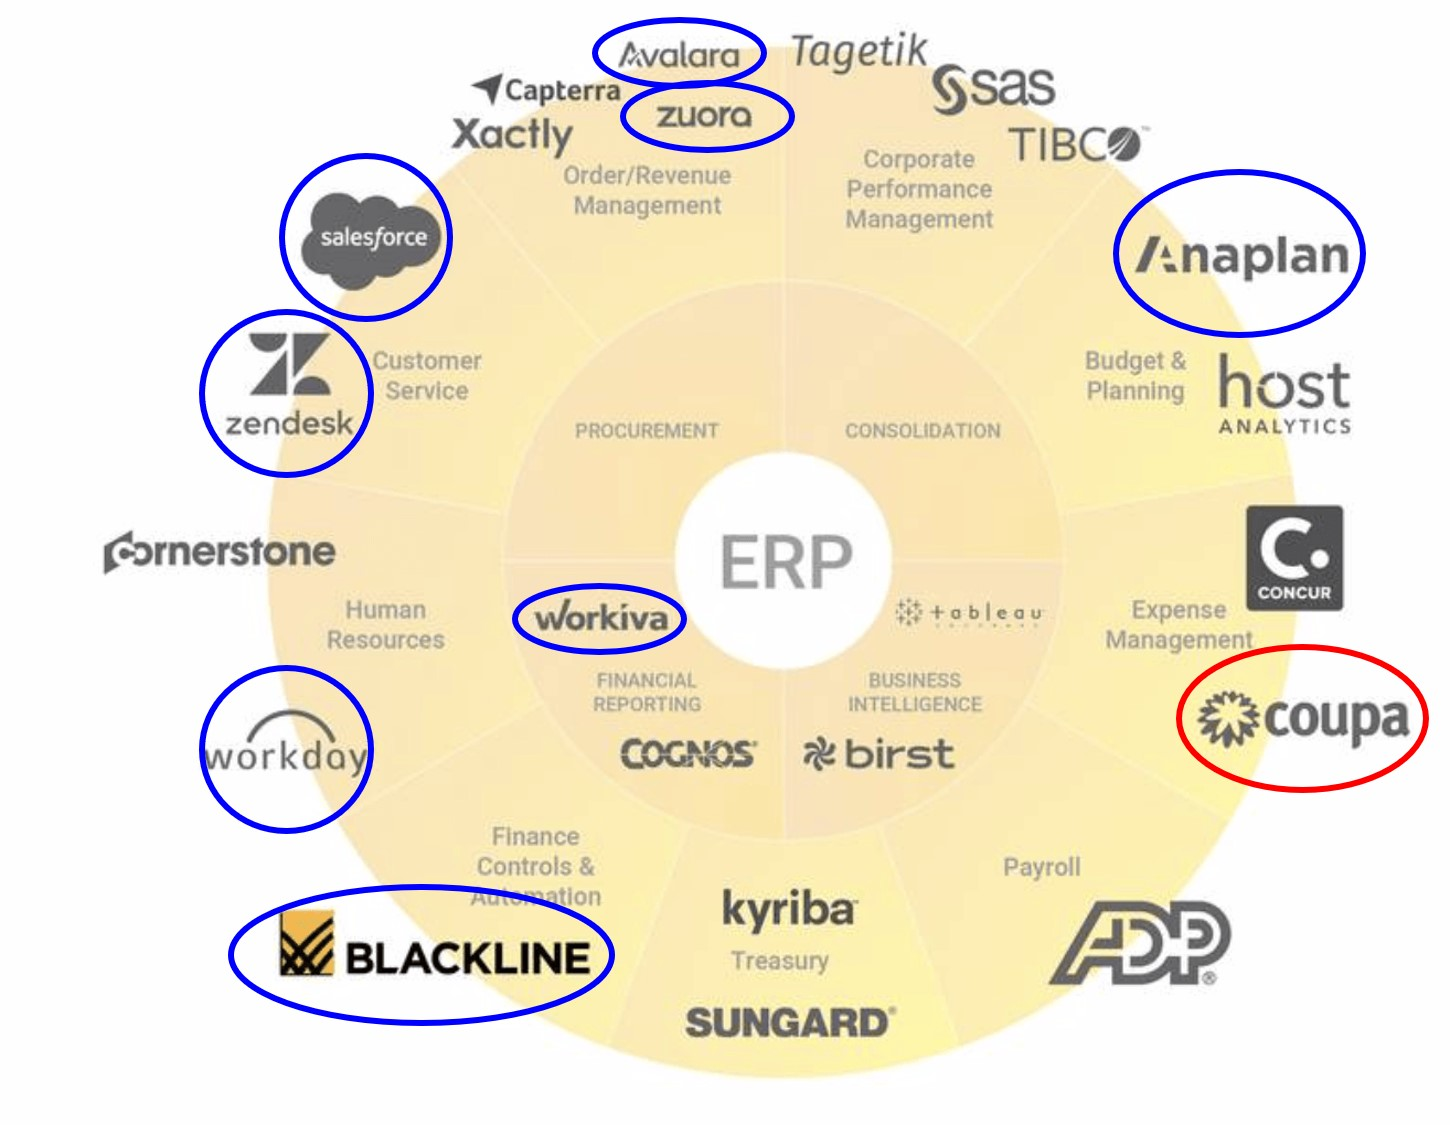 https://www.devenir-rentier.fr/uploads/12850_2020-01-29_erp_sector_overview.jpg